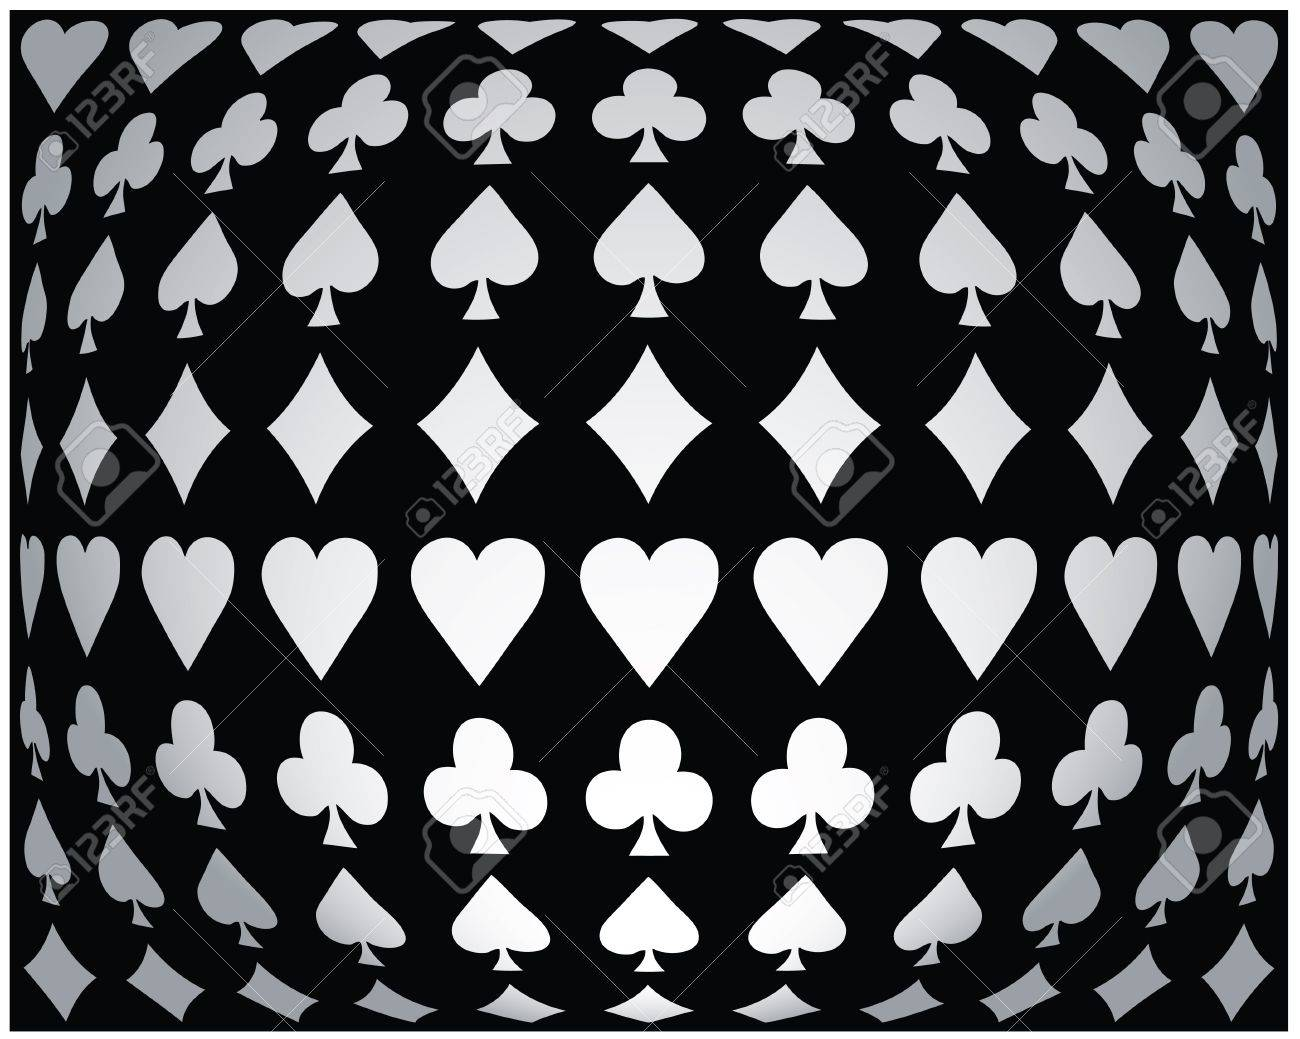 Poker table background - Poker Table Background Black White Seamless Poker Background